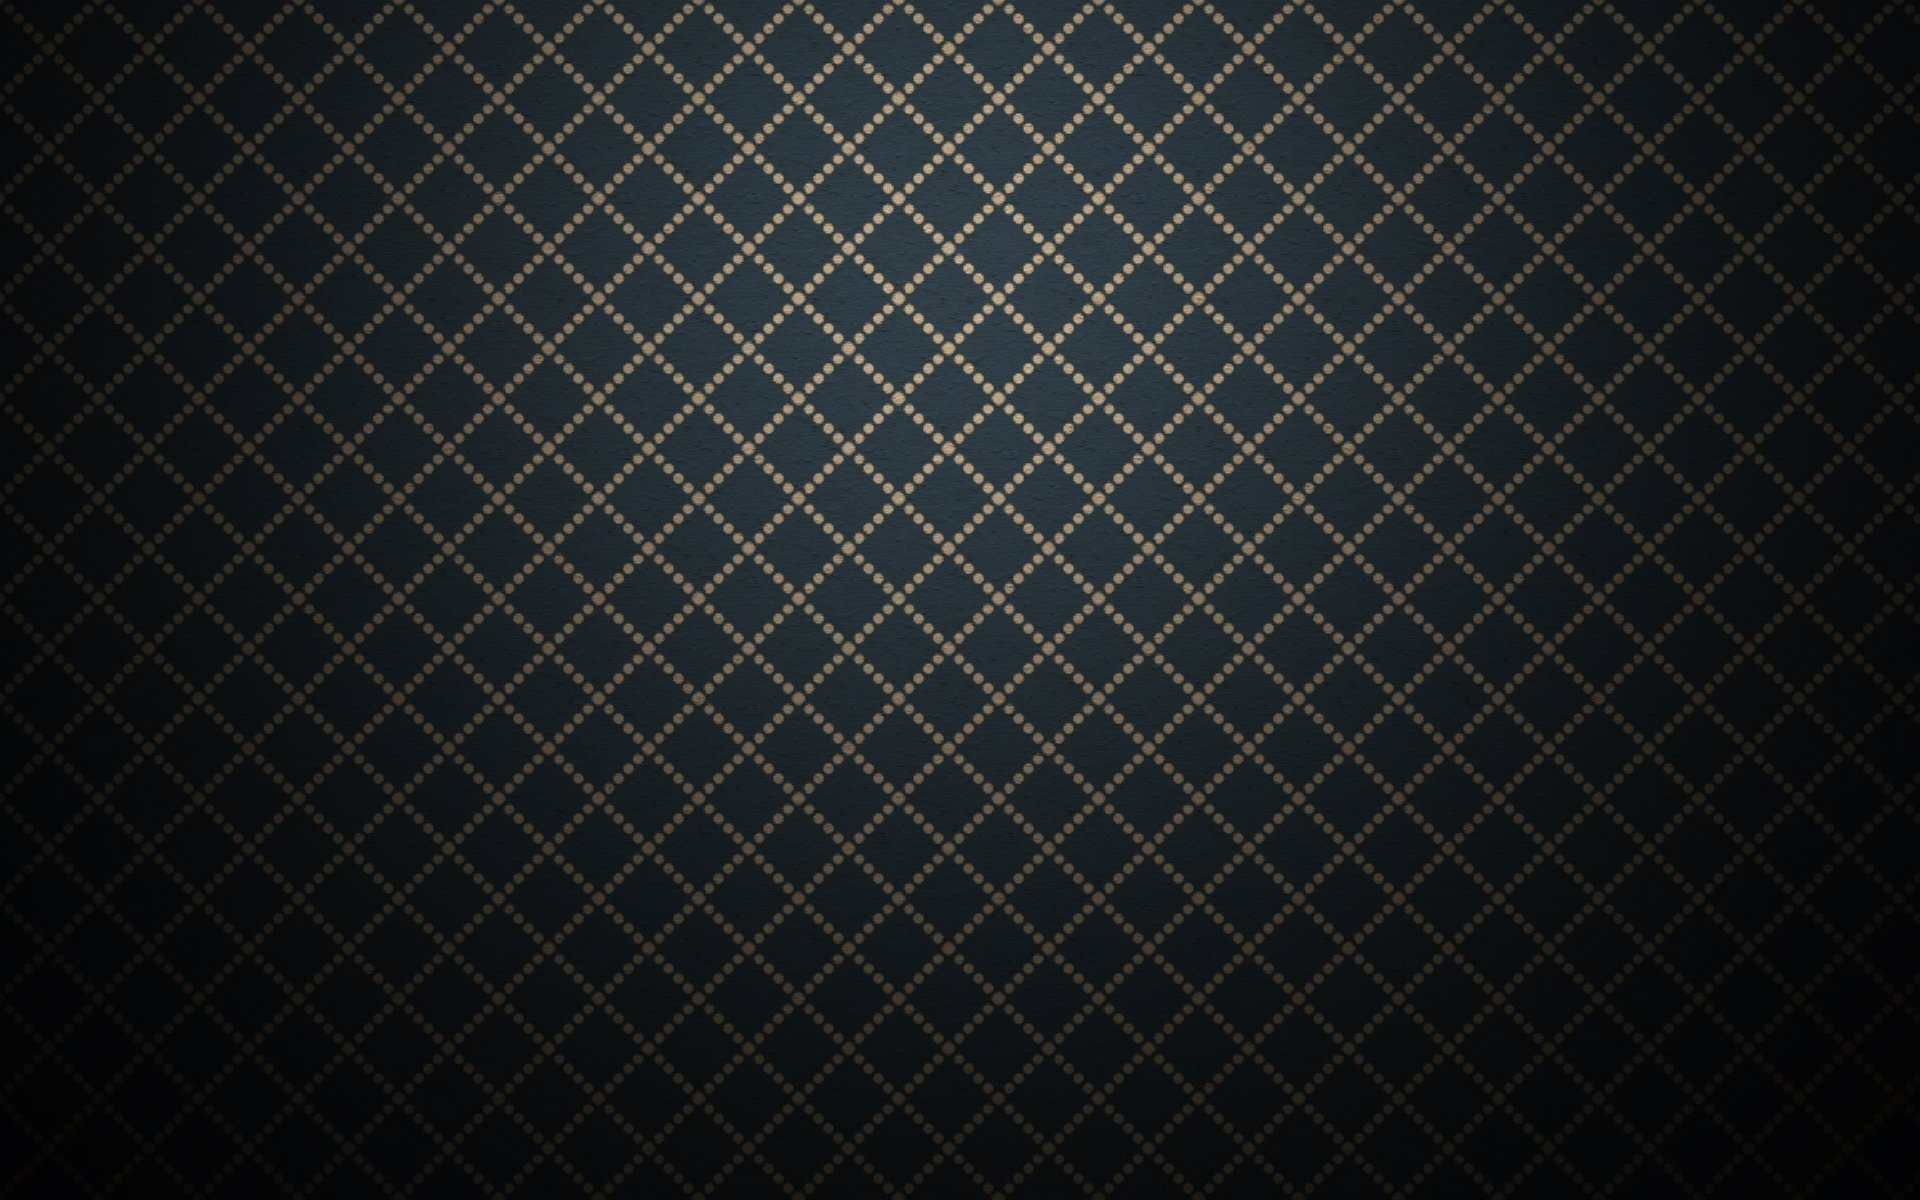 Plaid full hd wallpaper and background image 1920x1200 for Tartan wallpaper next